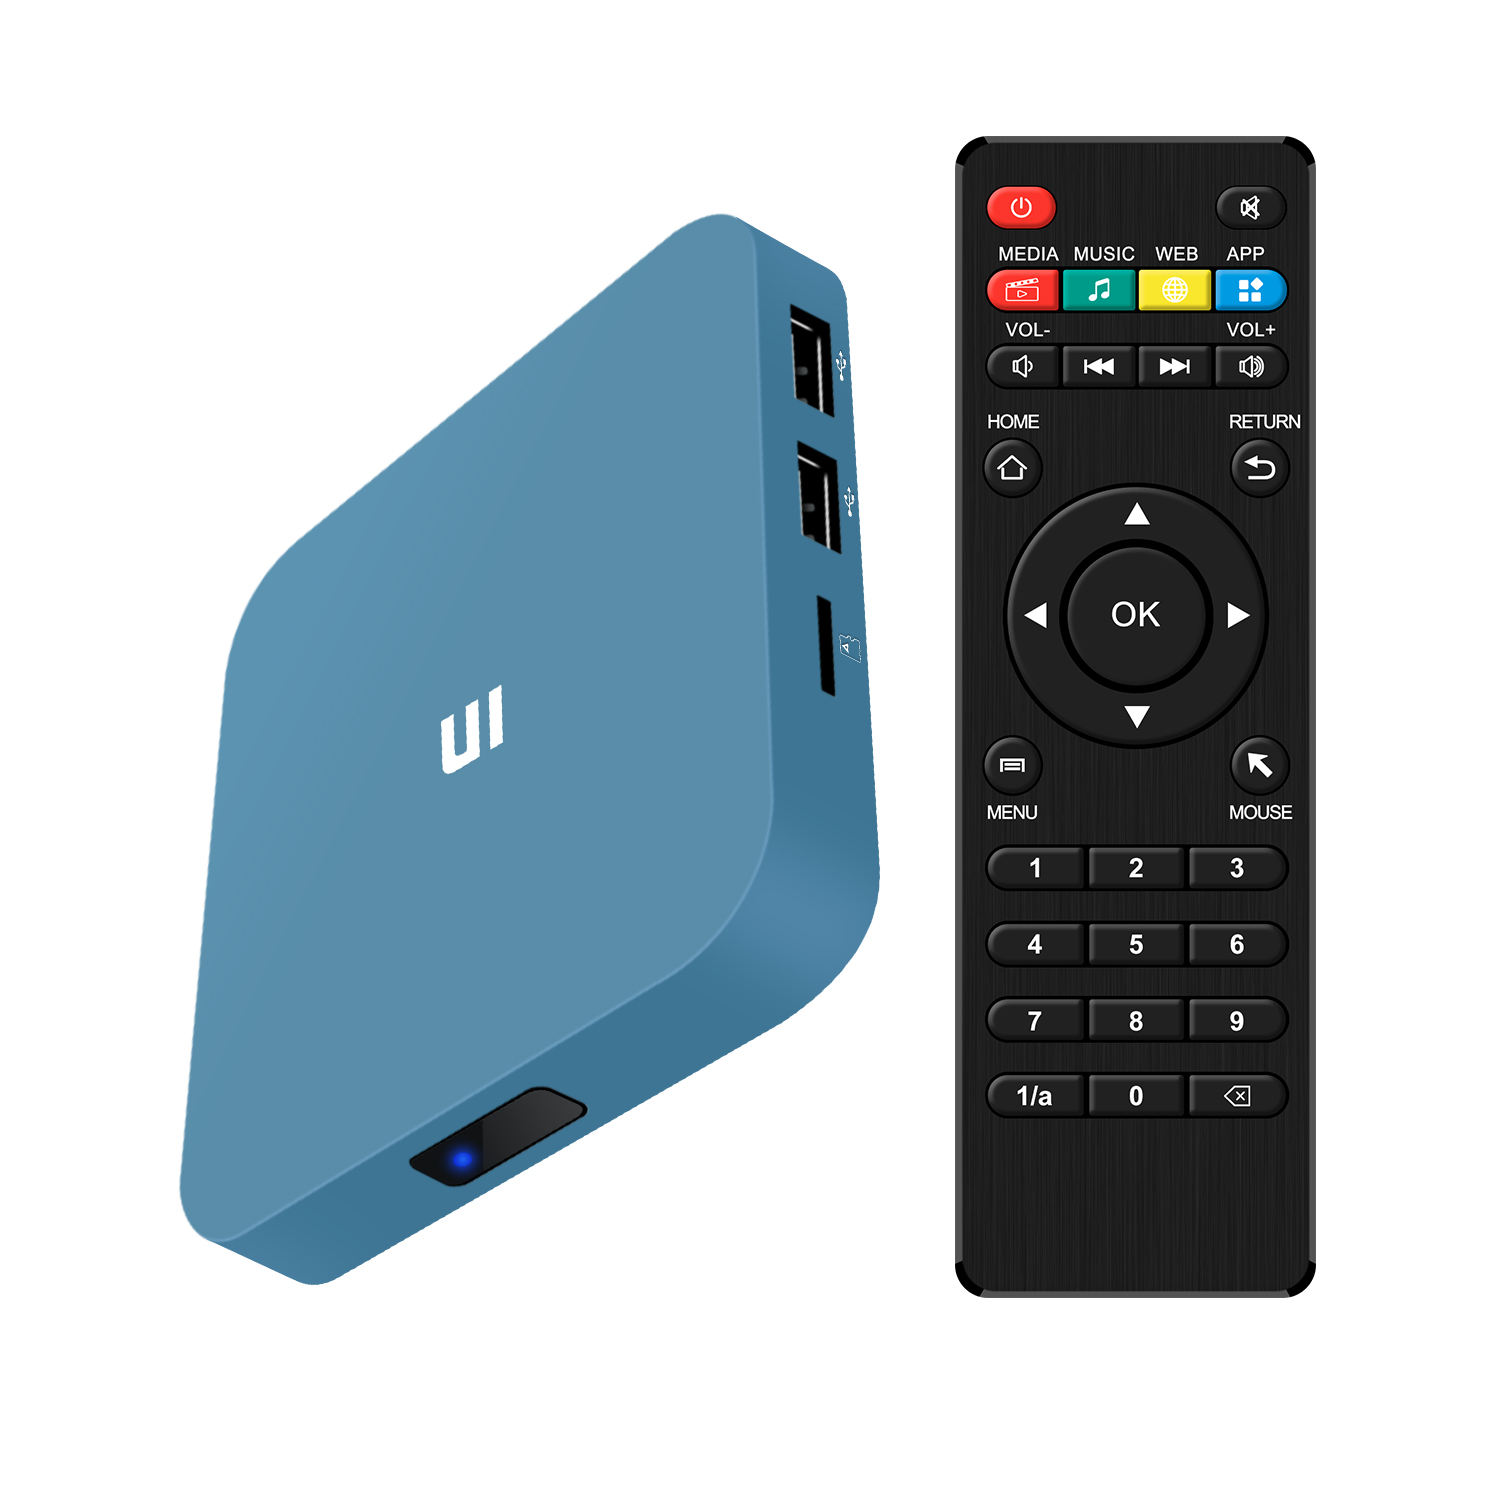 Cheapest Rk3229 2Gb Ram 16Gb Rom Quad Core Android tvボックス9.1 4K Original Kodi Ott Smart Tv Boxサポートiptv